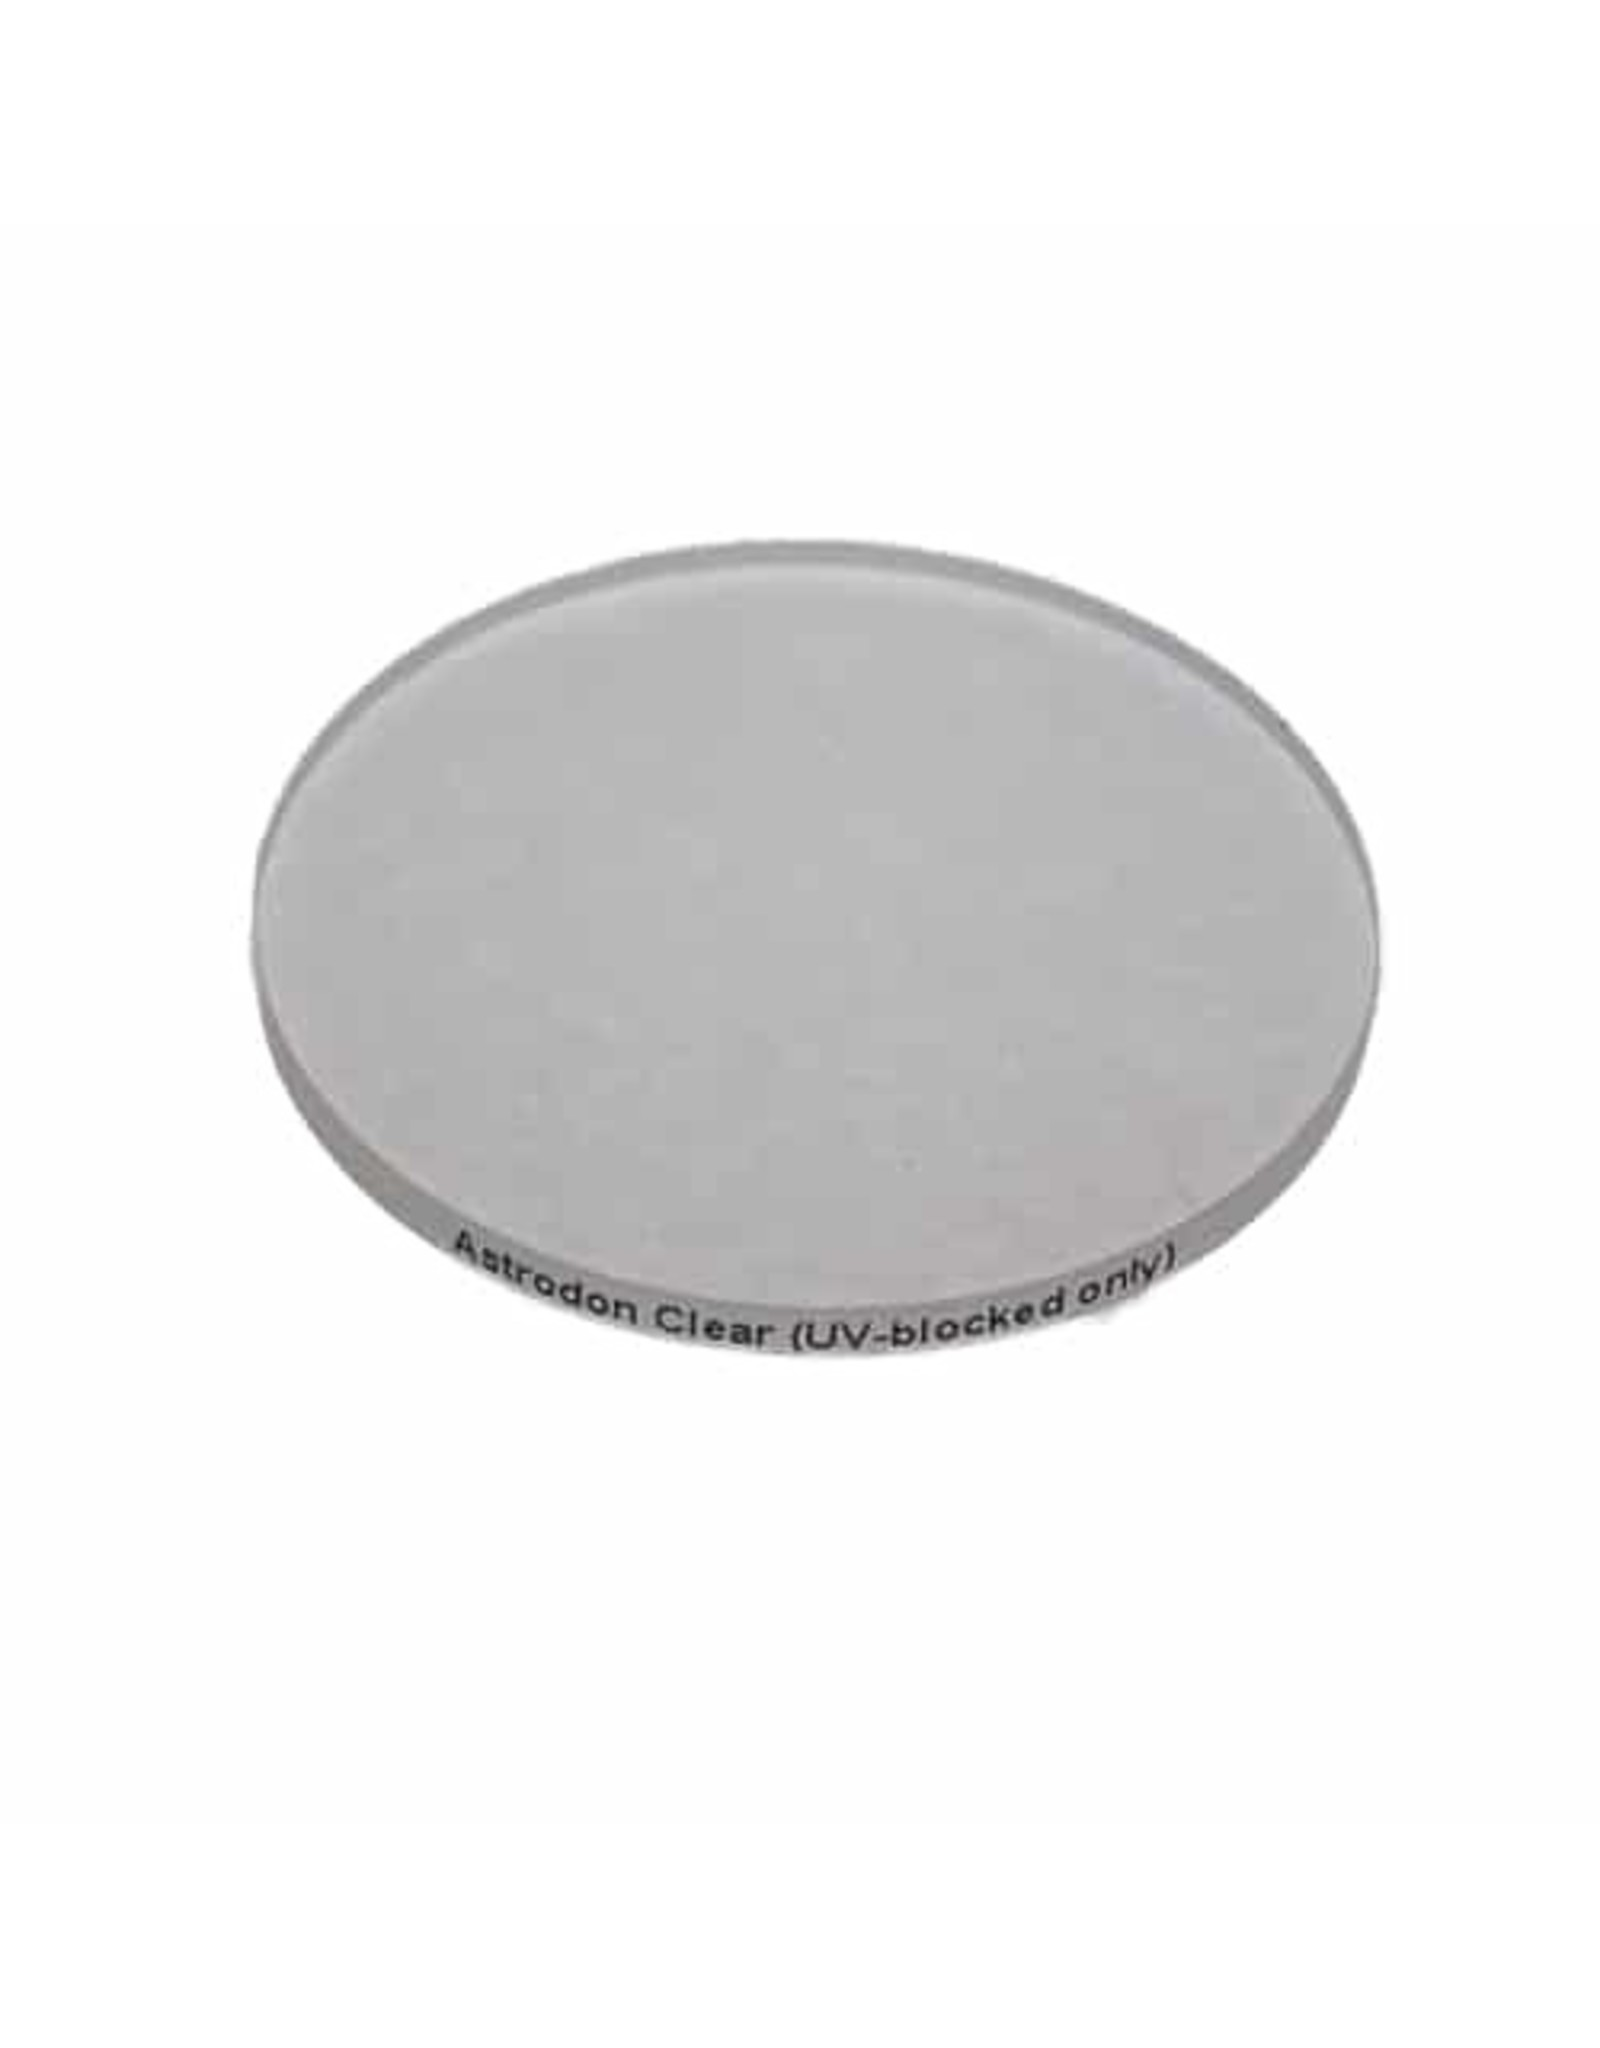 "Astrodon Astrodon Clear Filters - Astrodon 1.25"" Mounted Clear (UV-blocked, No NIR blocking)"